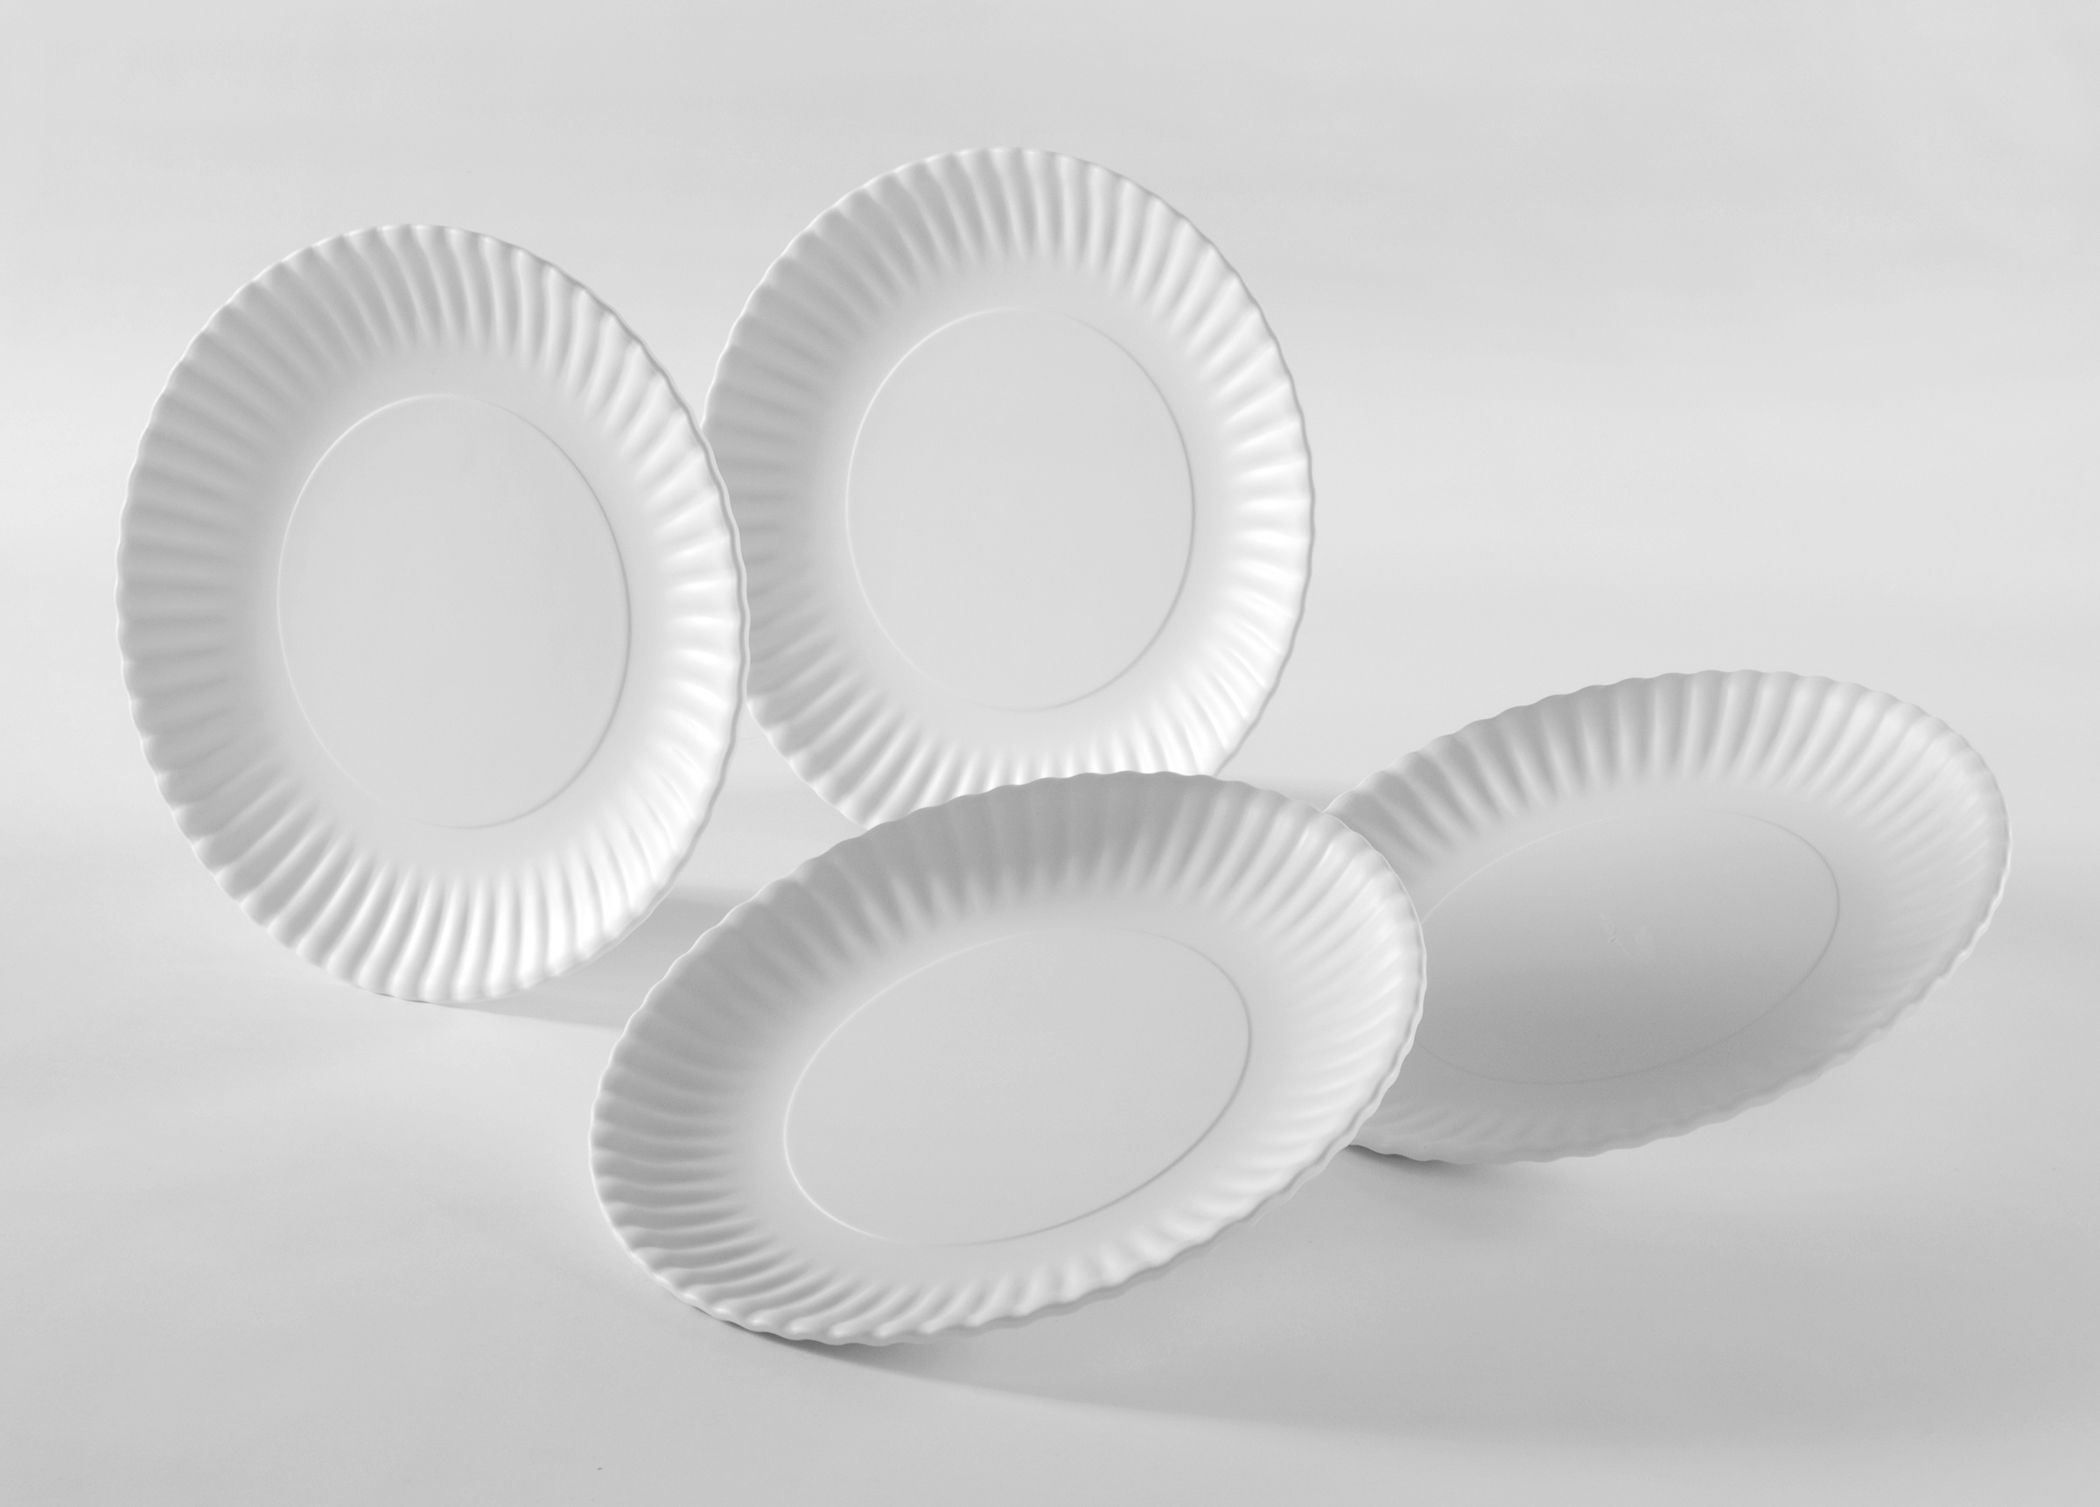 The Reusable Paper Plates Set takes an iconic disposable item - the paper plate - and remakes it with reusable dishwasher safe melamine. & Dress up your next picnic! Designer David Dewey takes an iconic ...